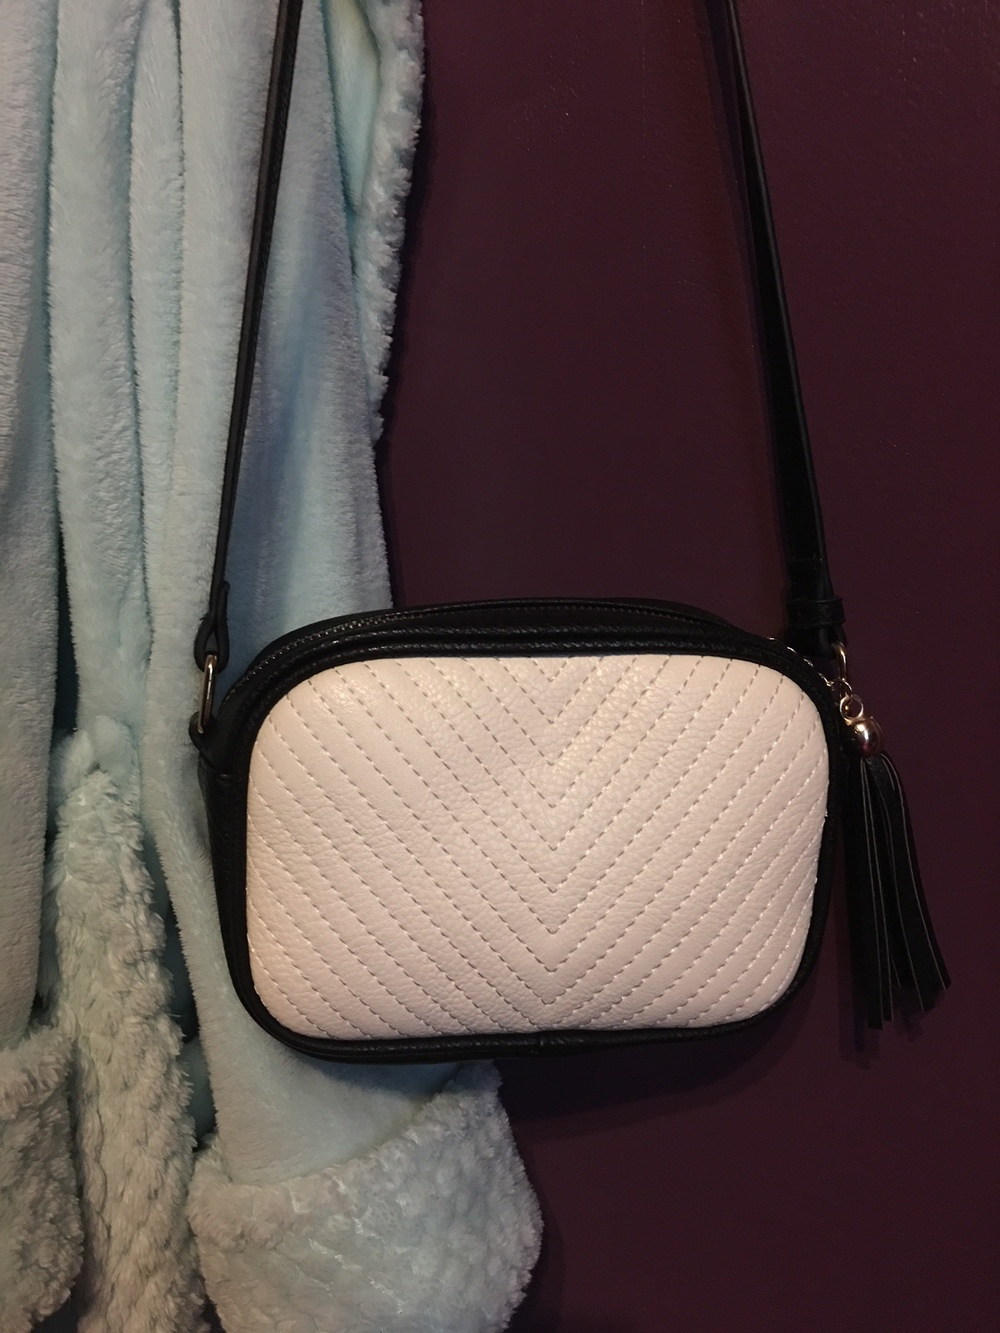 Currently, I have downsized my every-day handbag to my black and white Francesca's crossbody bag. It's so cute and it's just big enough to hold only the necessities, which is all I've needed lately whenever I've gone out. I feel like everyone needs a small crossbody bag like this in their handbag stash because it just goes great with every outfit and I don't know about you, but I don't enjoy lugging around a huge handbag everywhere I go! It's nice to have just a small one to hold the necessities and not weigh you down the entire time! I really do like crossbody bags a lot because it's light, always with you, and out of the way.